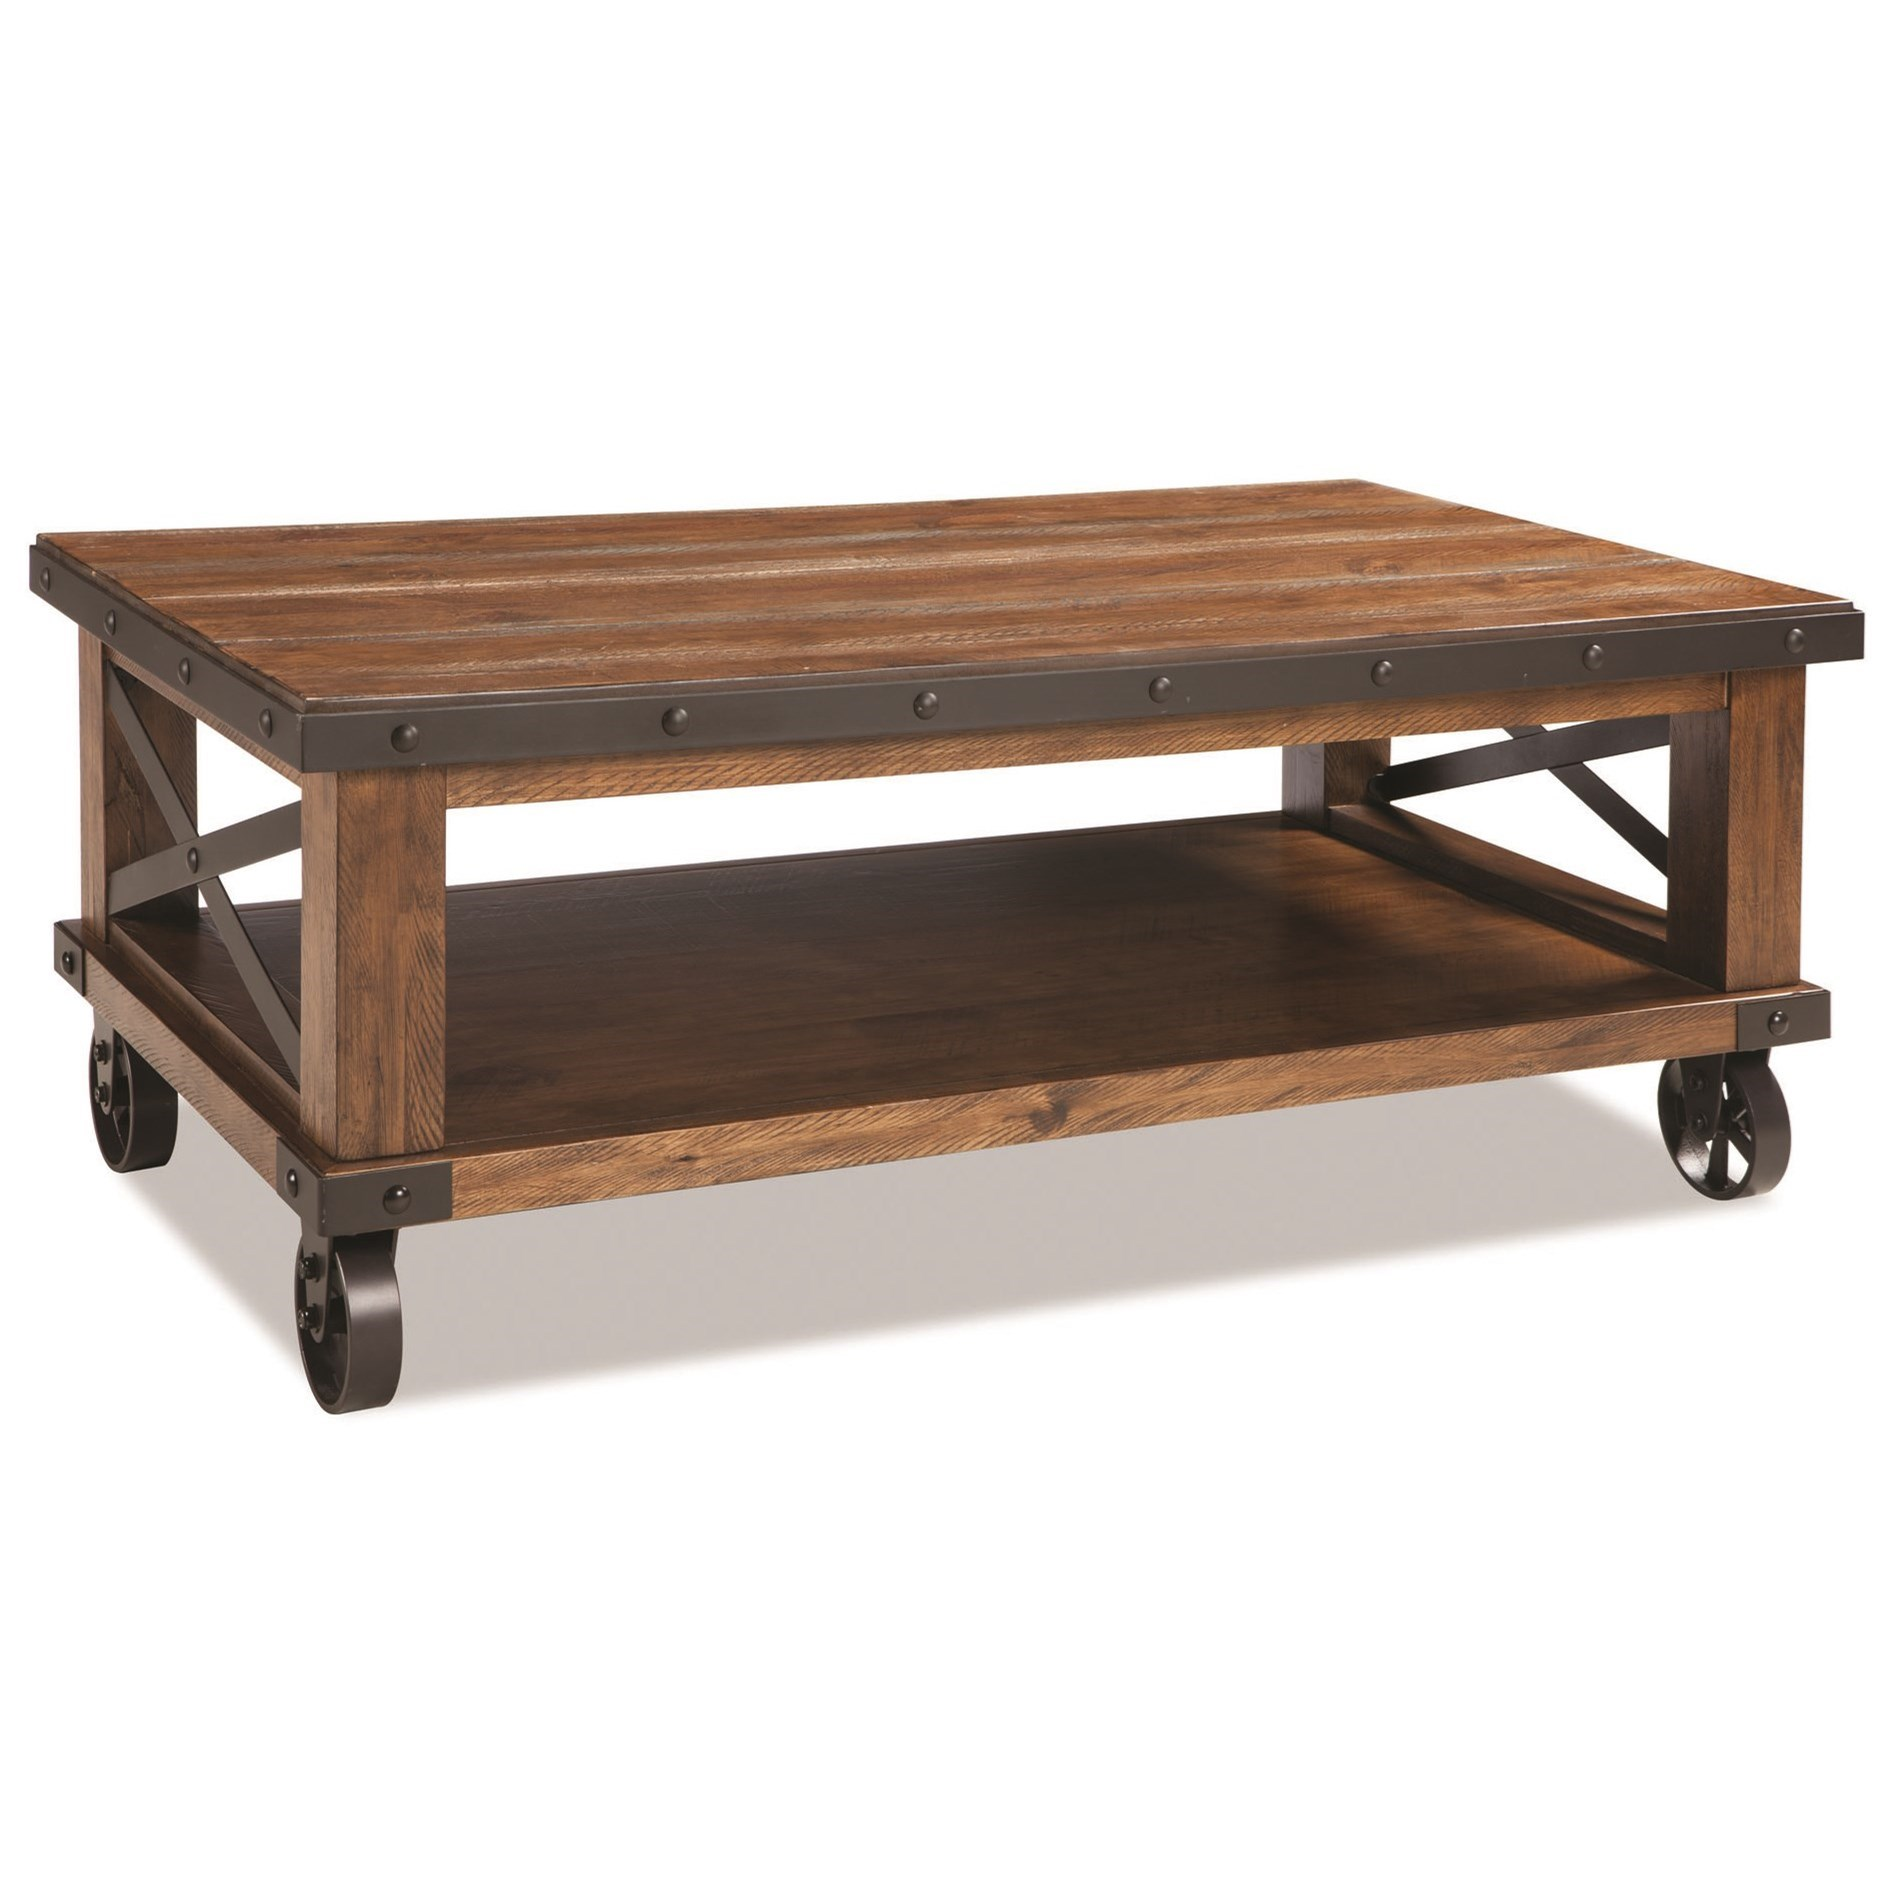 Taos Coffee Table by Intercon at Rife's Home Furniture